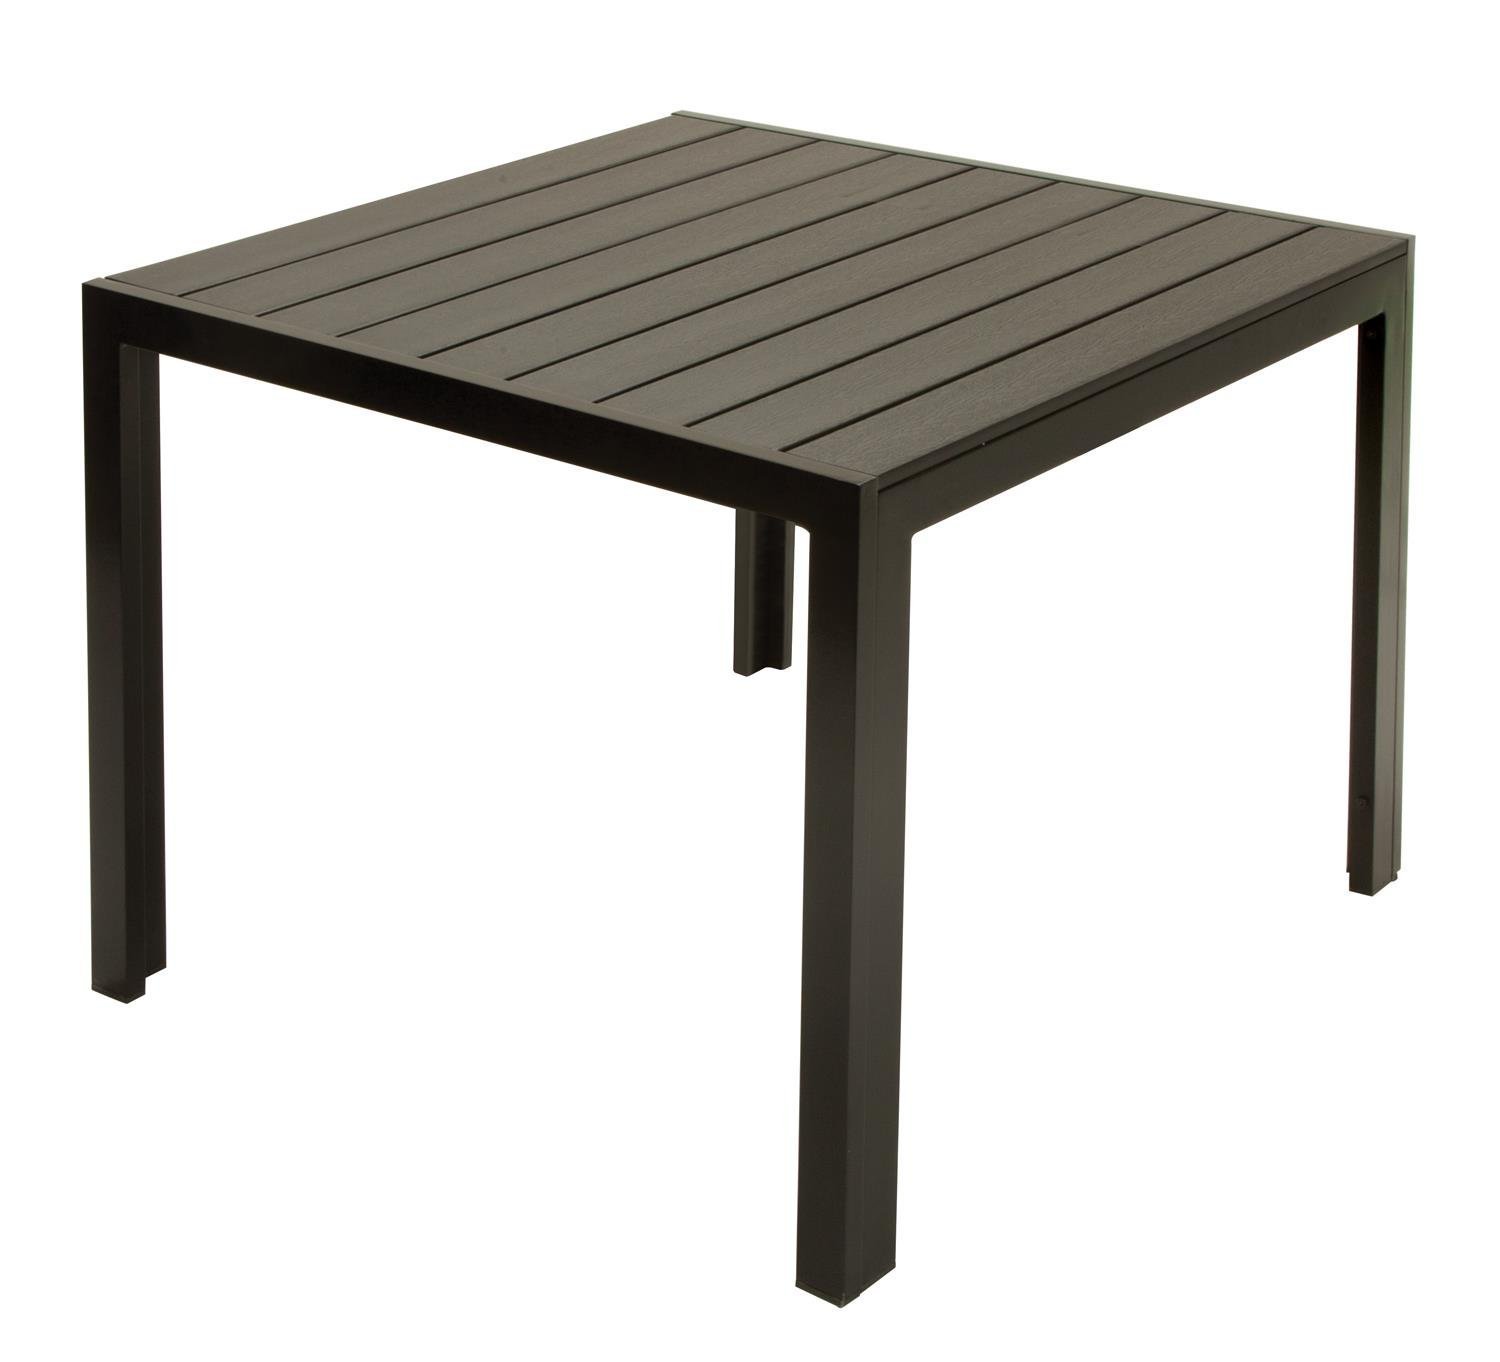 Amazon.com: Cosco Outdoor Resin Slat, Square Dining Table, 35.4 By  35.4 Inch: Kitchen U0026 Dining